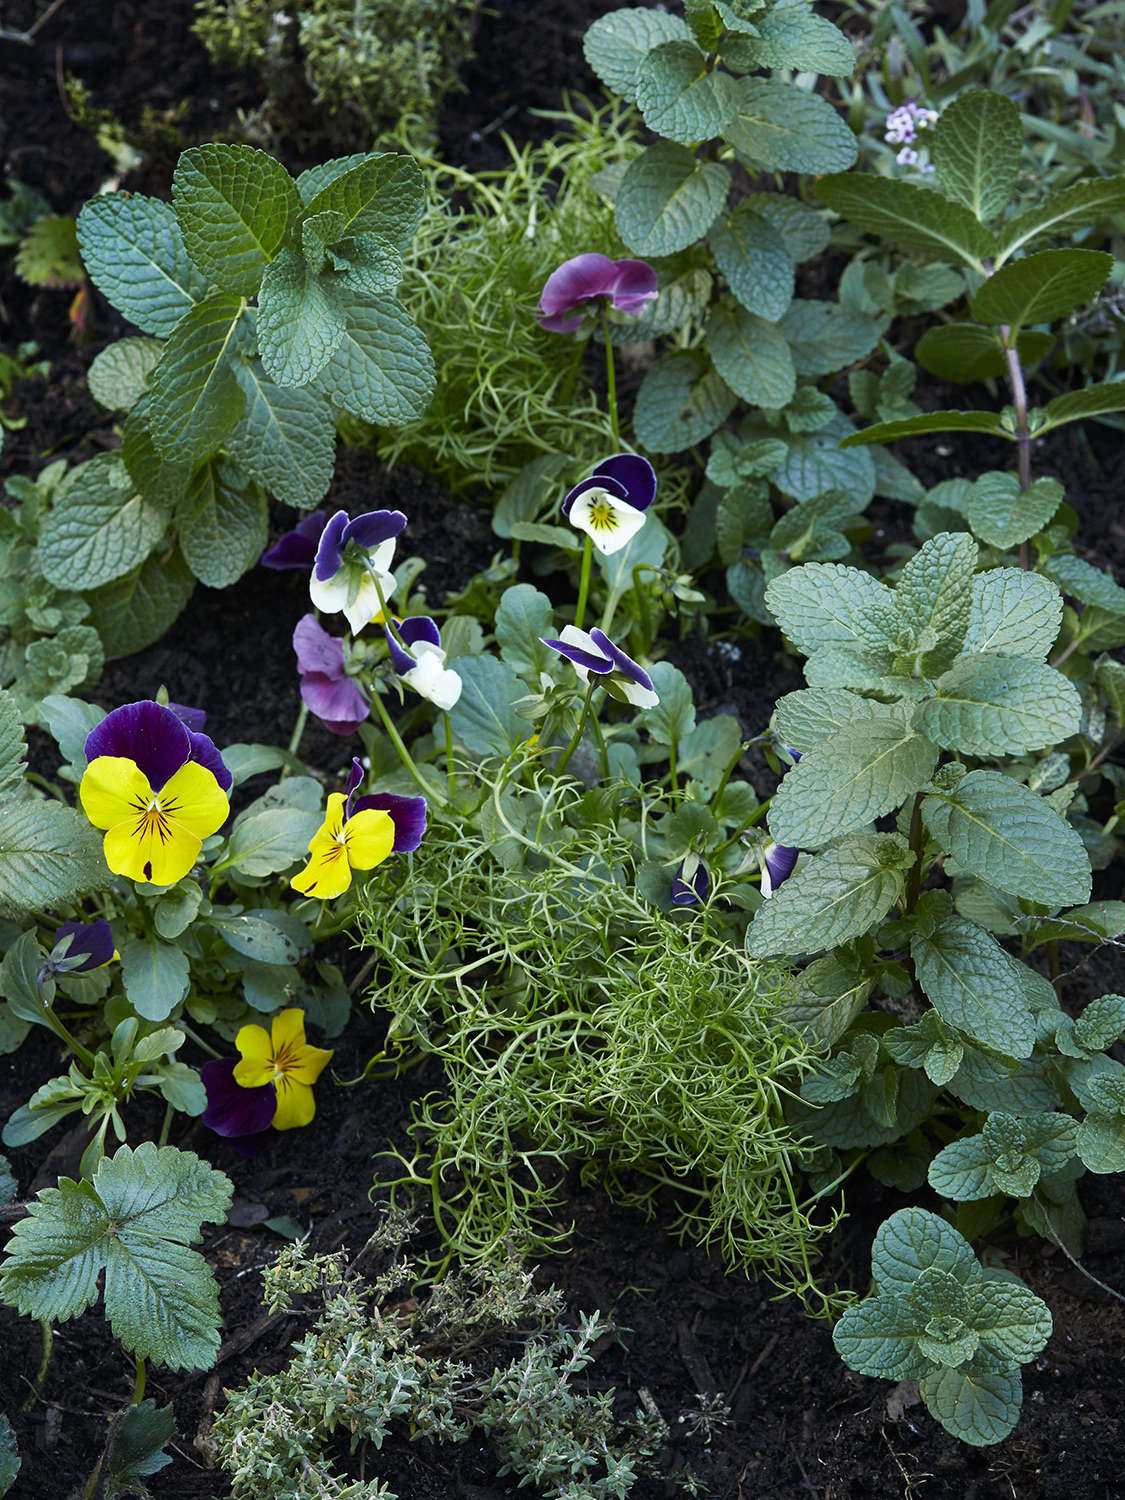 Mint, chamomile, and pansies all make delicious tisanes. See more in Easy Teas You Can Grow, with 7 Tips from Emily Erb of Leaves & Flowers. Photograph by Aya Brackett.